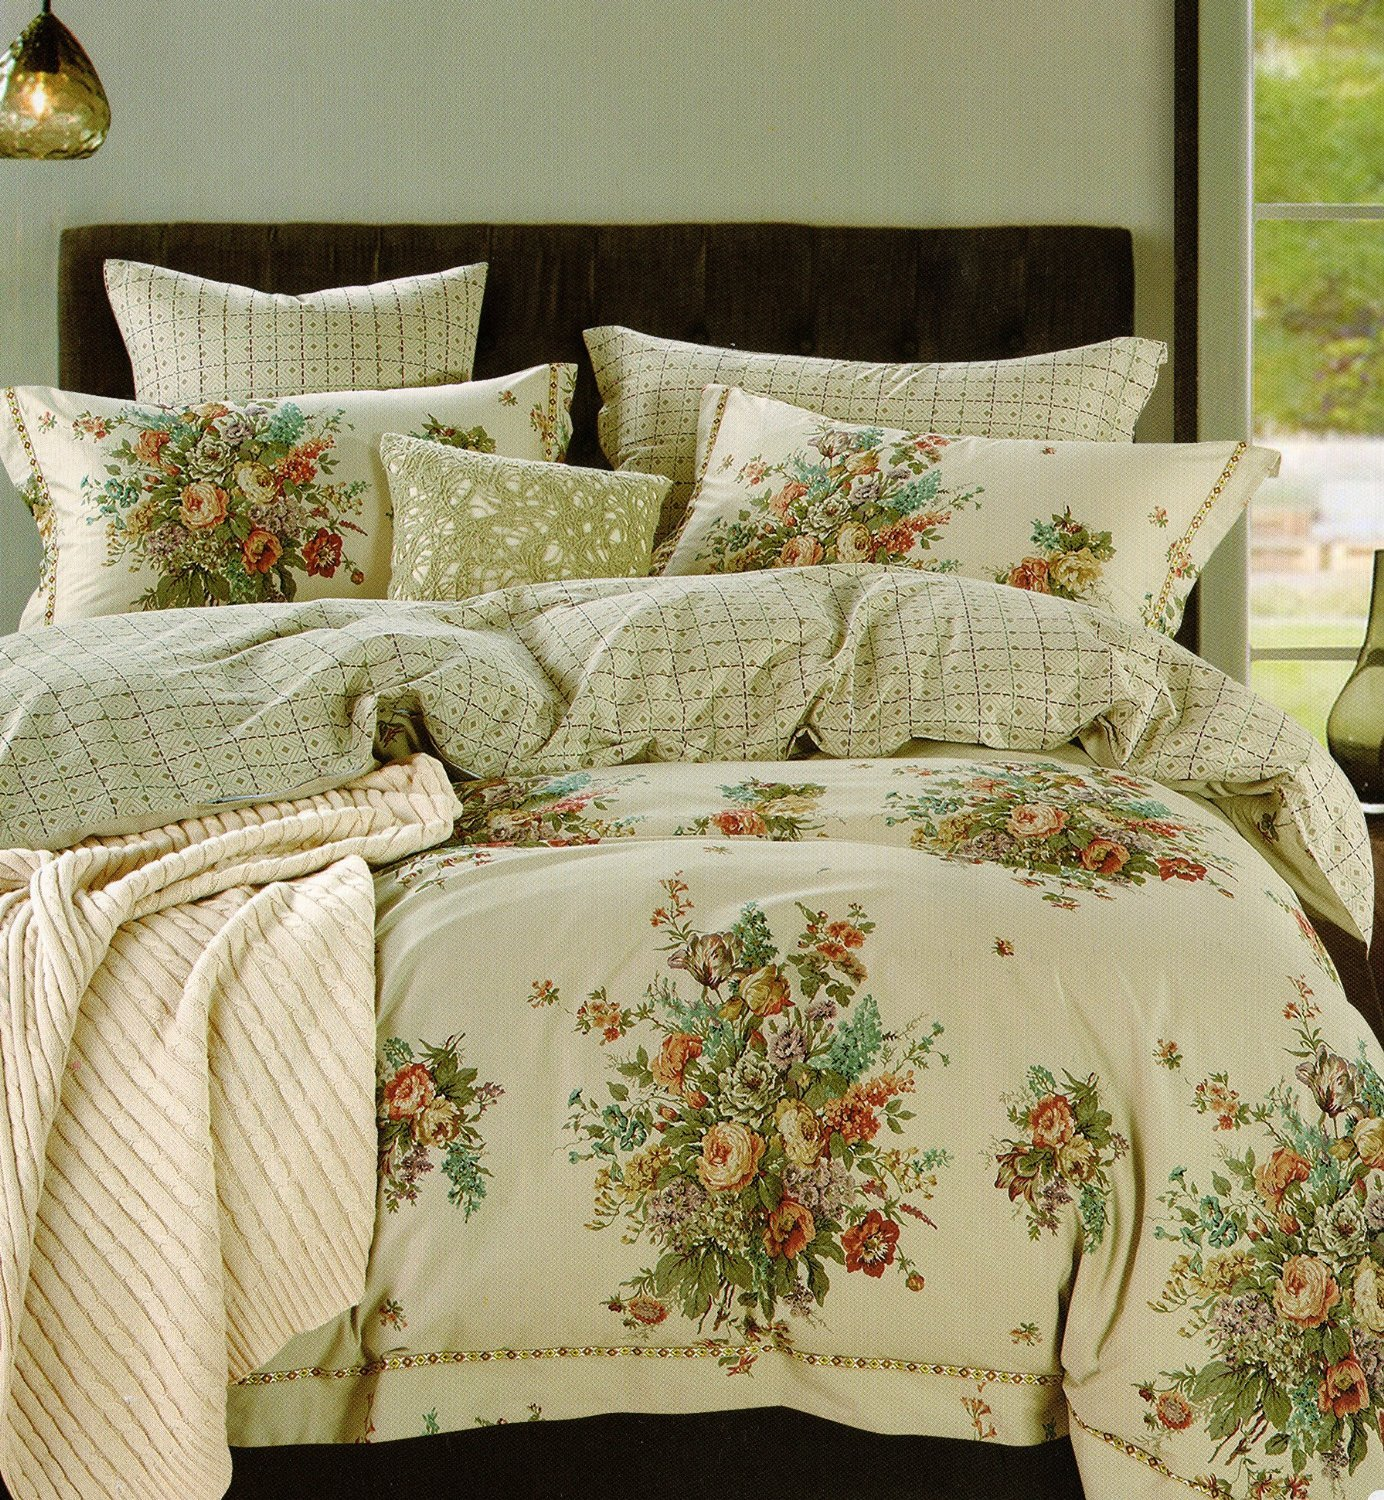 Reversible Floral Bedding King Khaki Tan